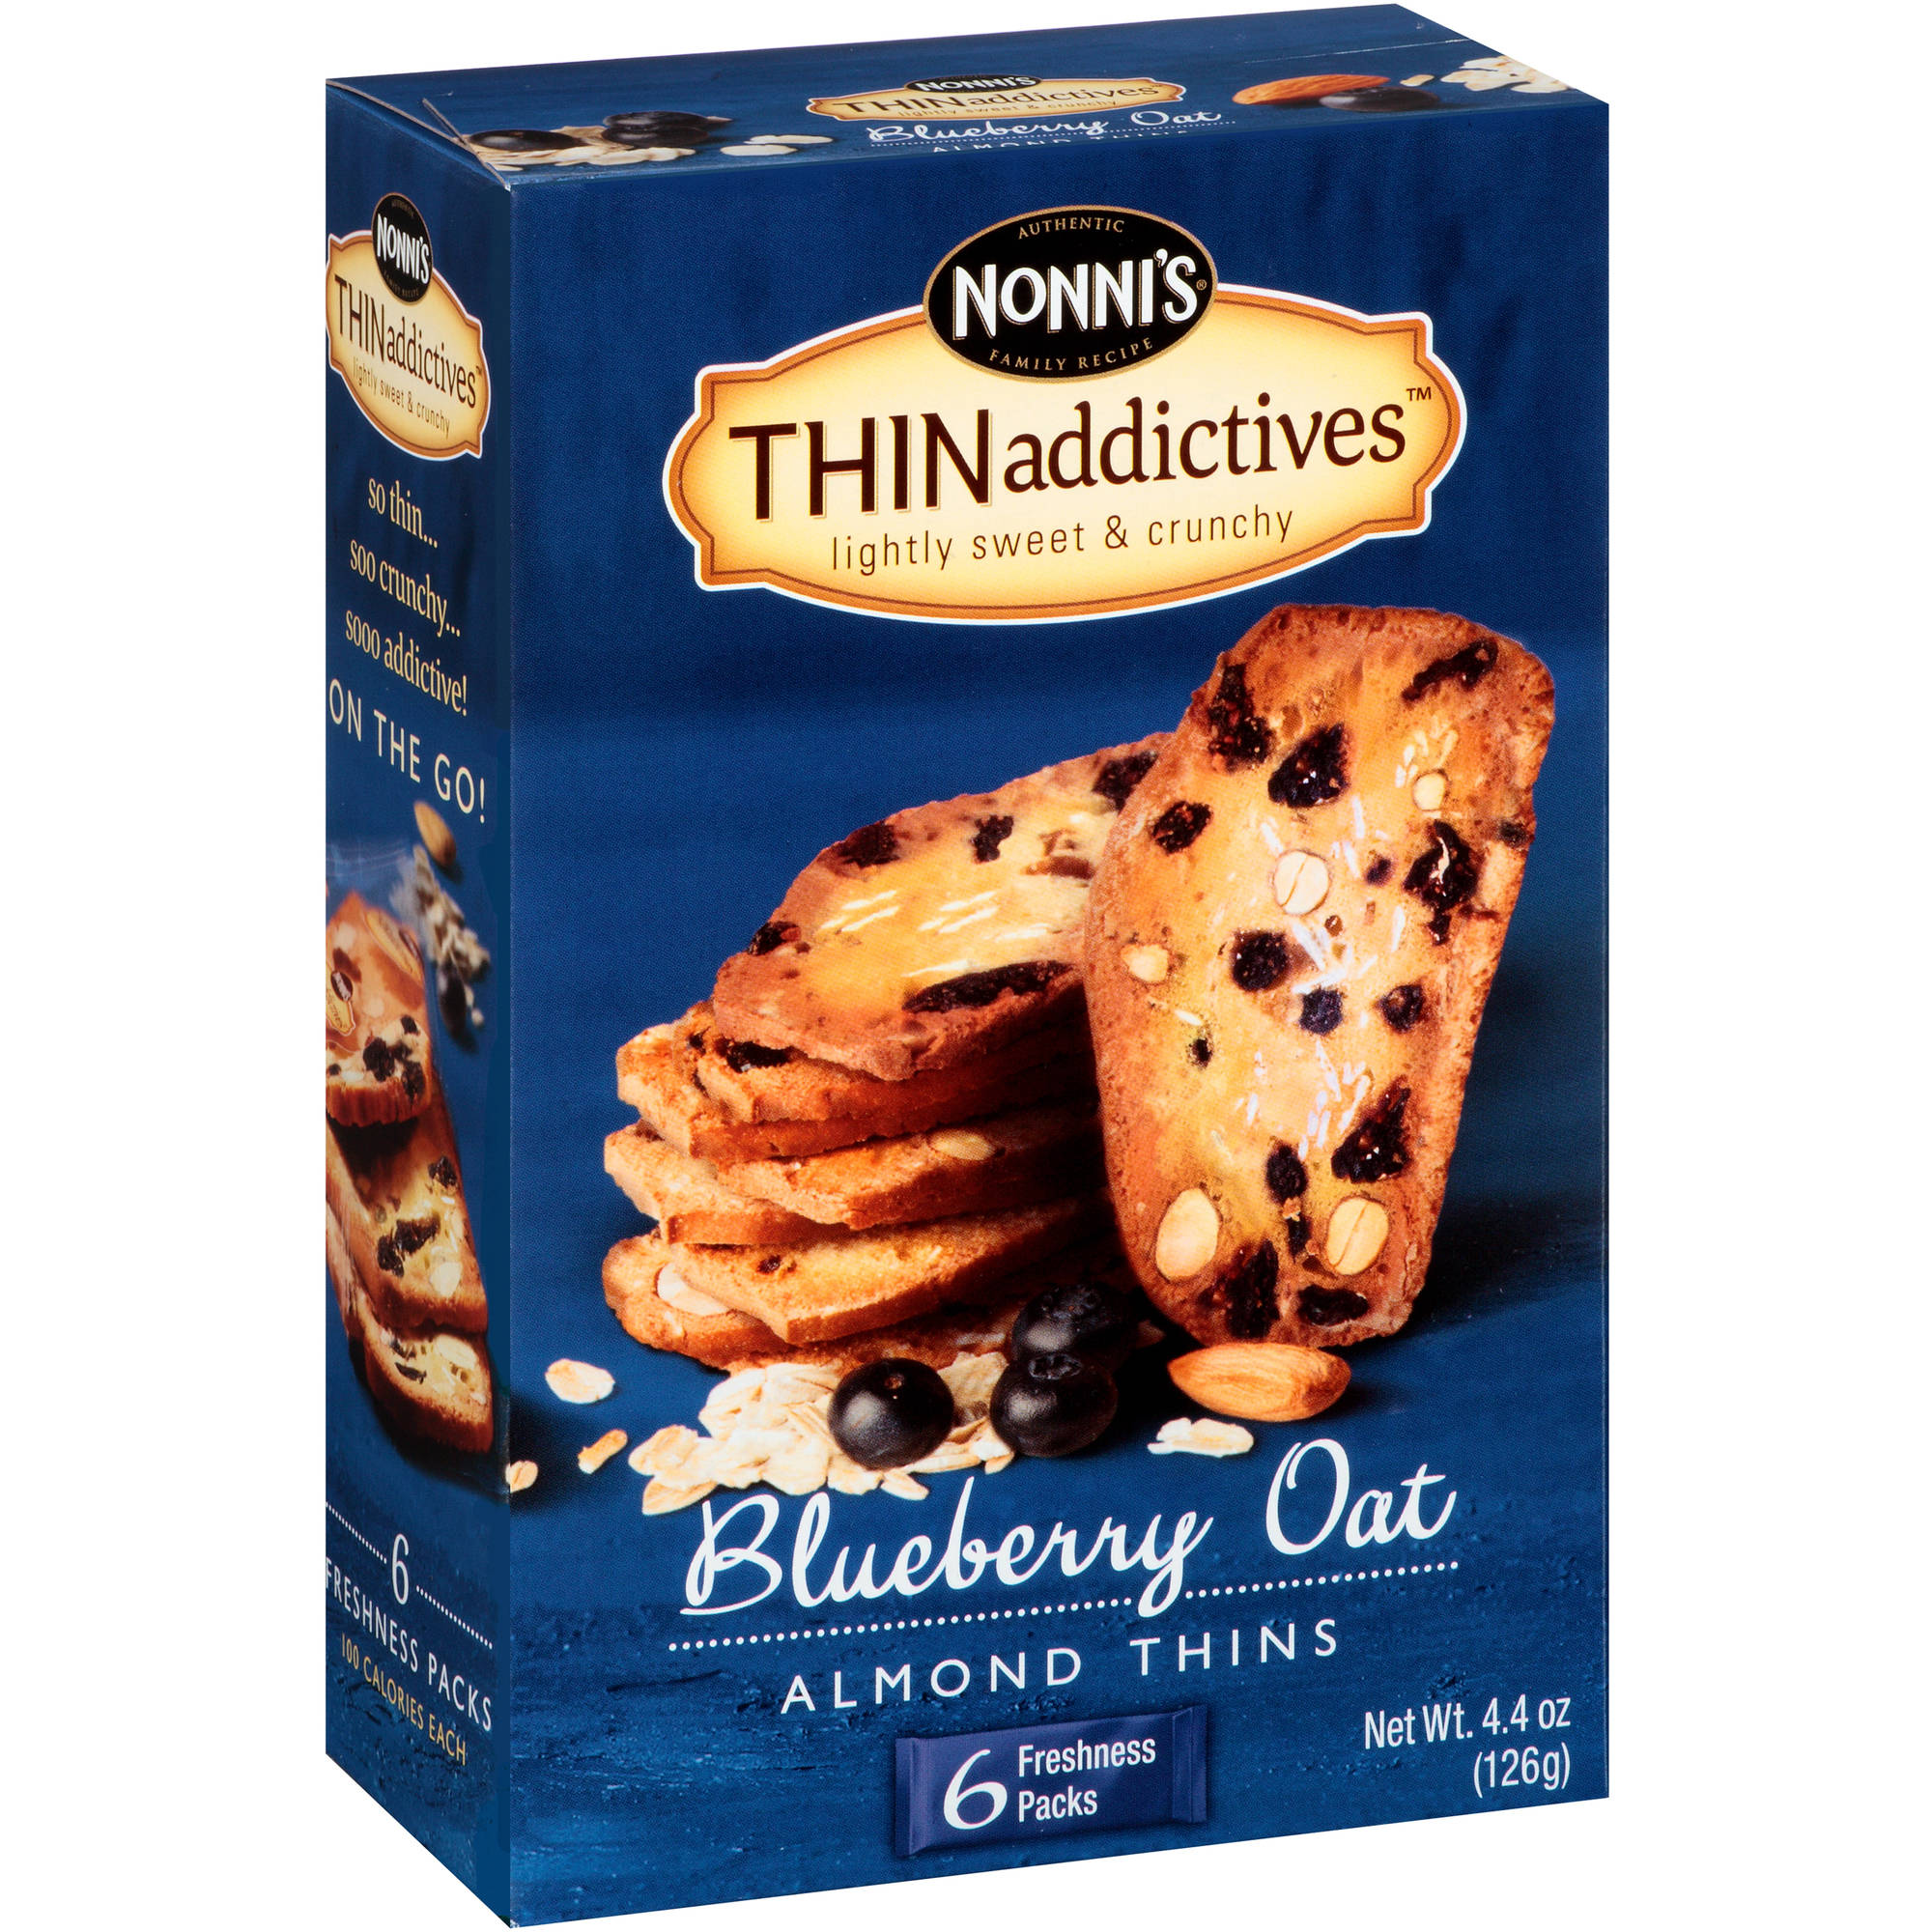 Nonni's THINaddictives Blueberry Oat Almond Thins, 4.4 oz